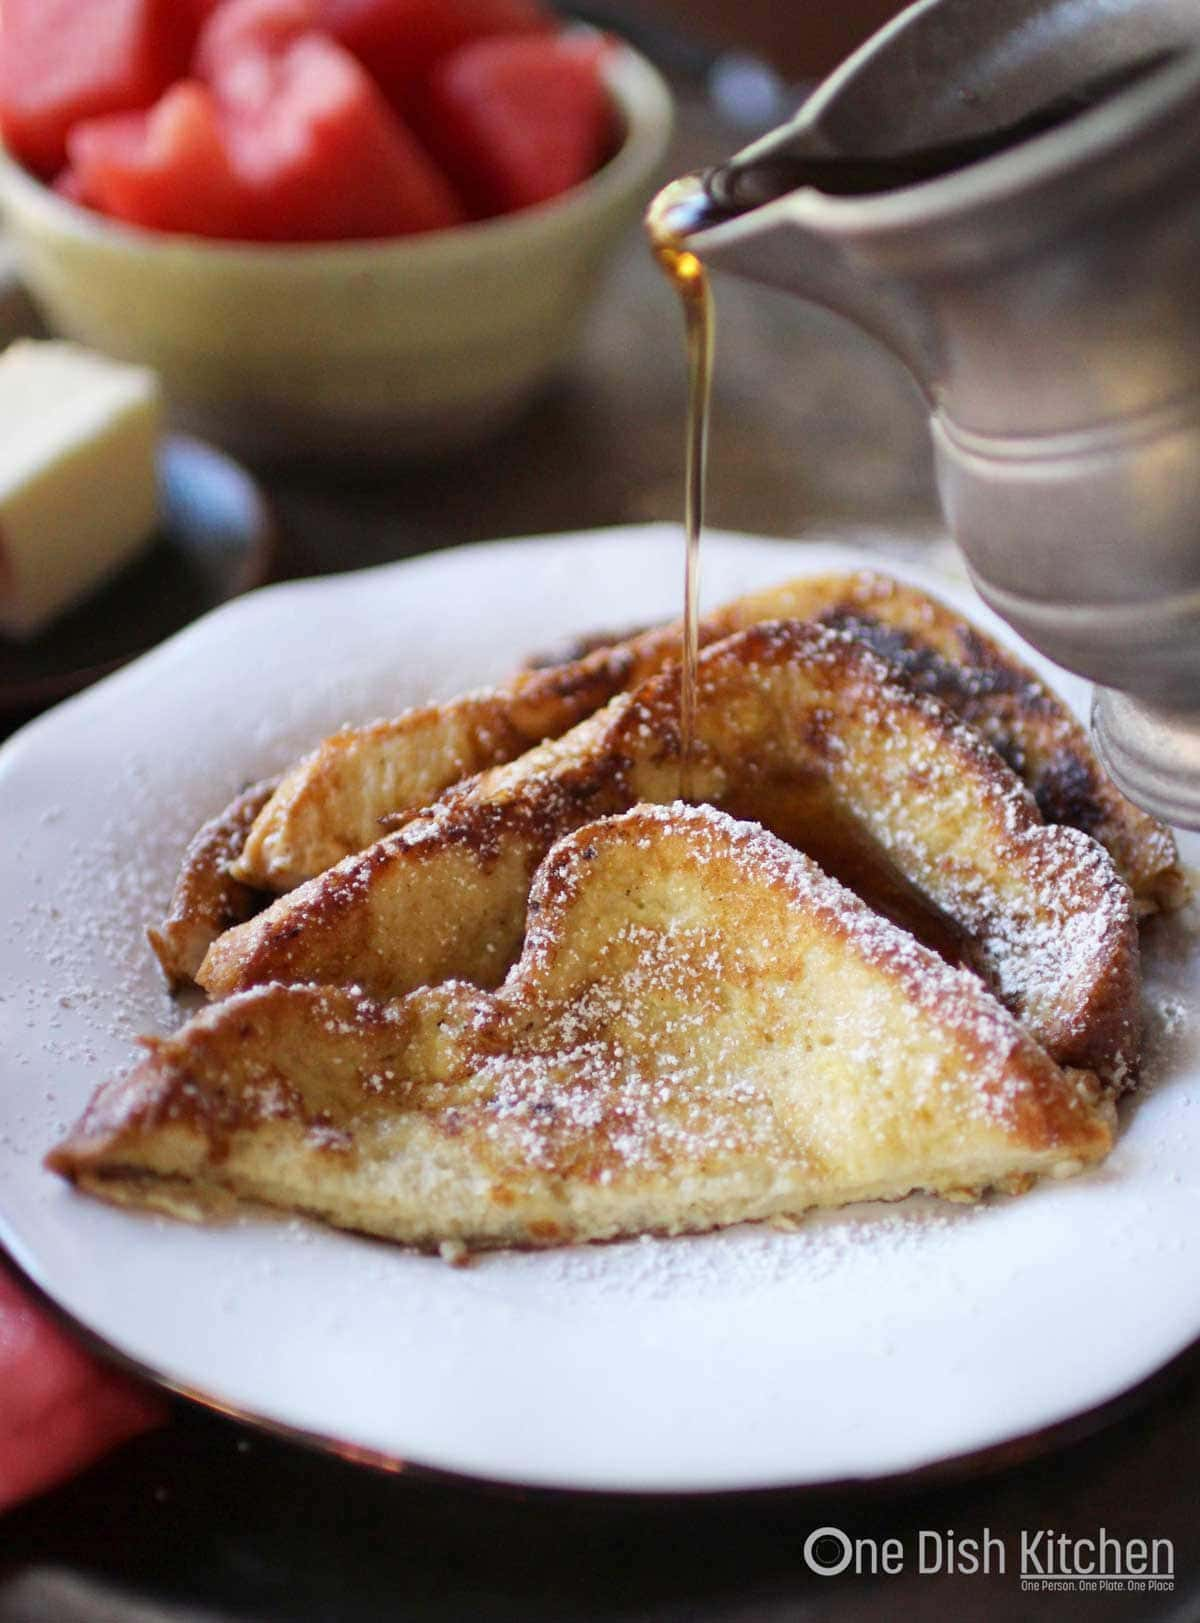 A plate of three slices of french toast dusted with powdered sugar being drizzled with maple syrup